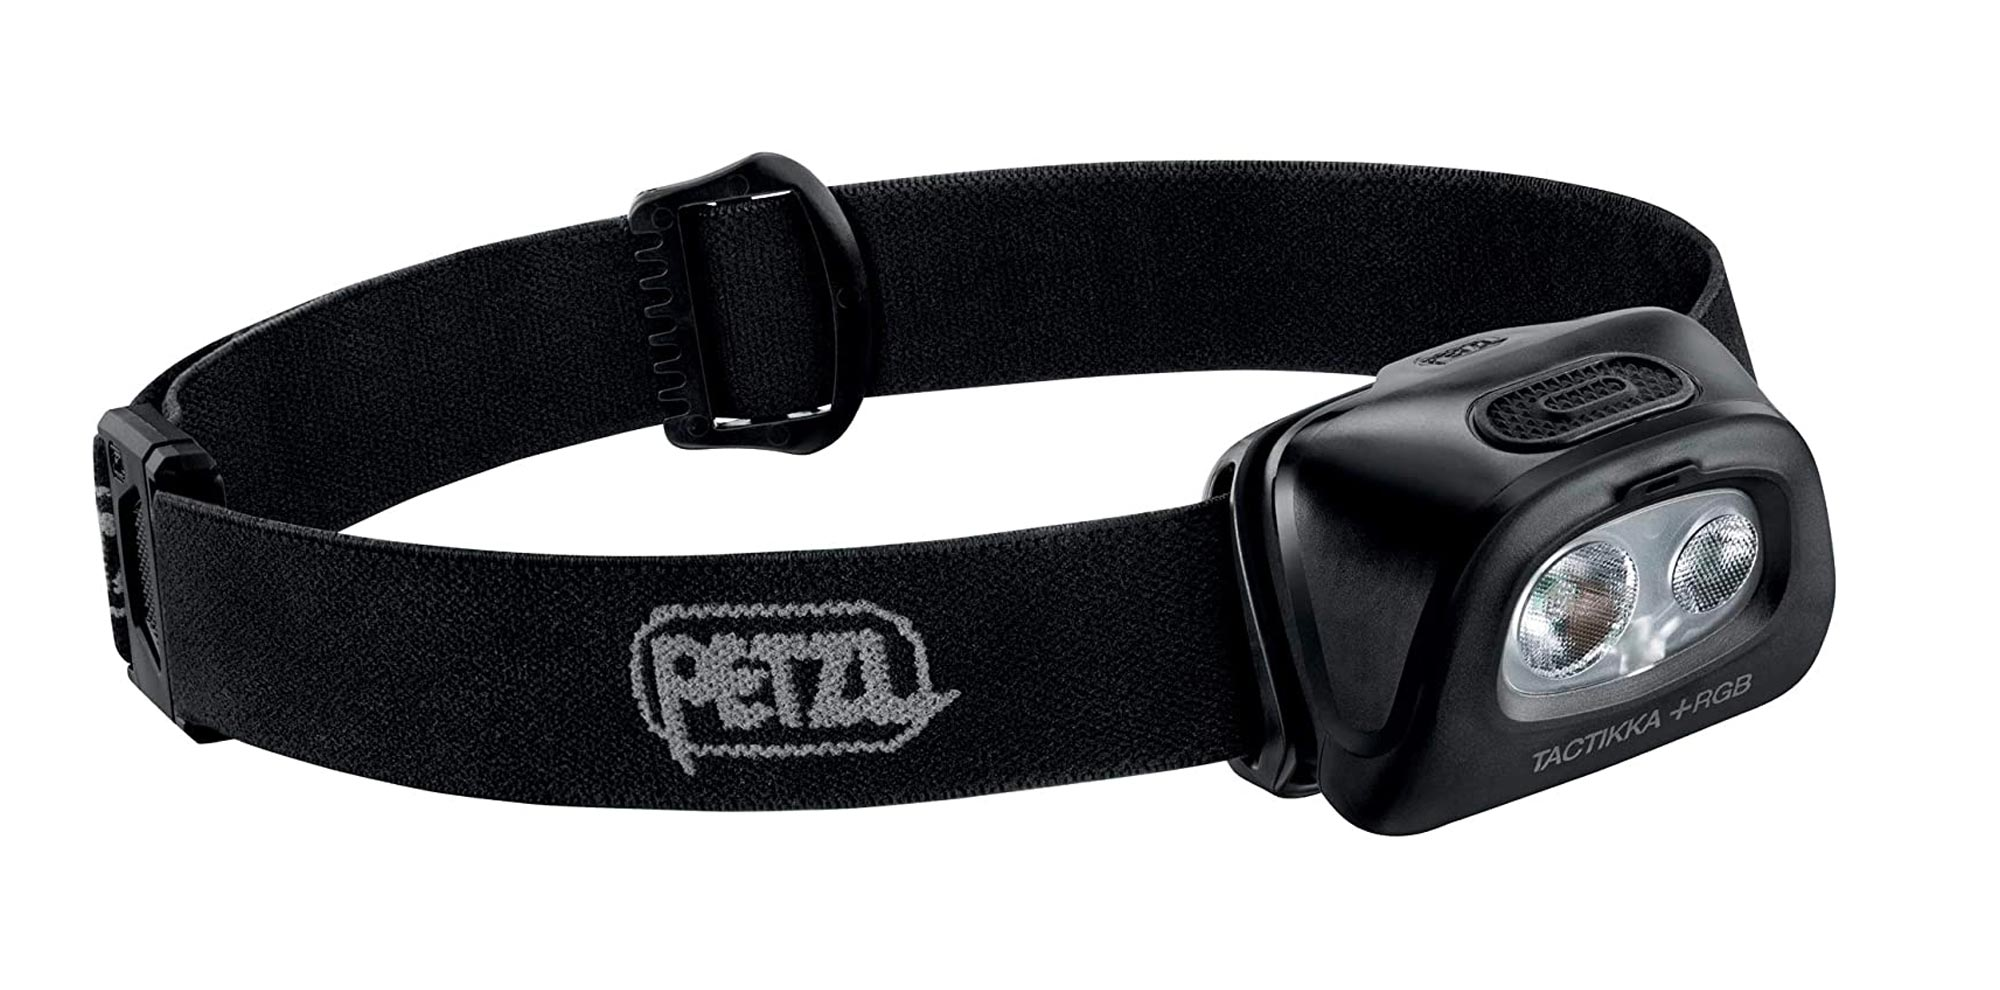 PETZL, TACTIKKA +RGB Stealth Headlamp with 350 Lumens for Fishing and Hunting